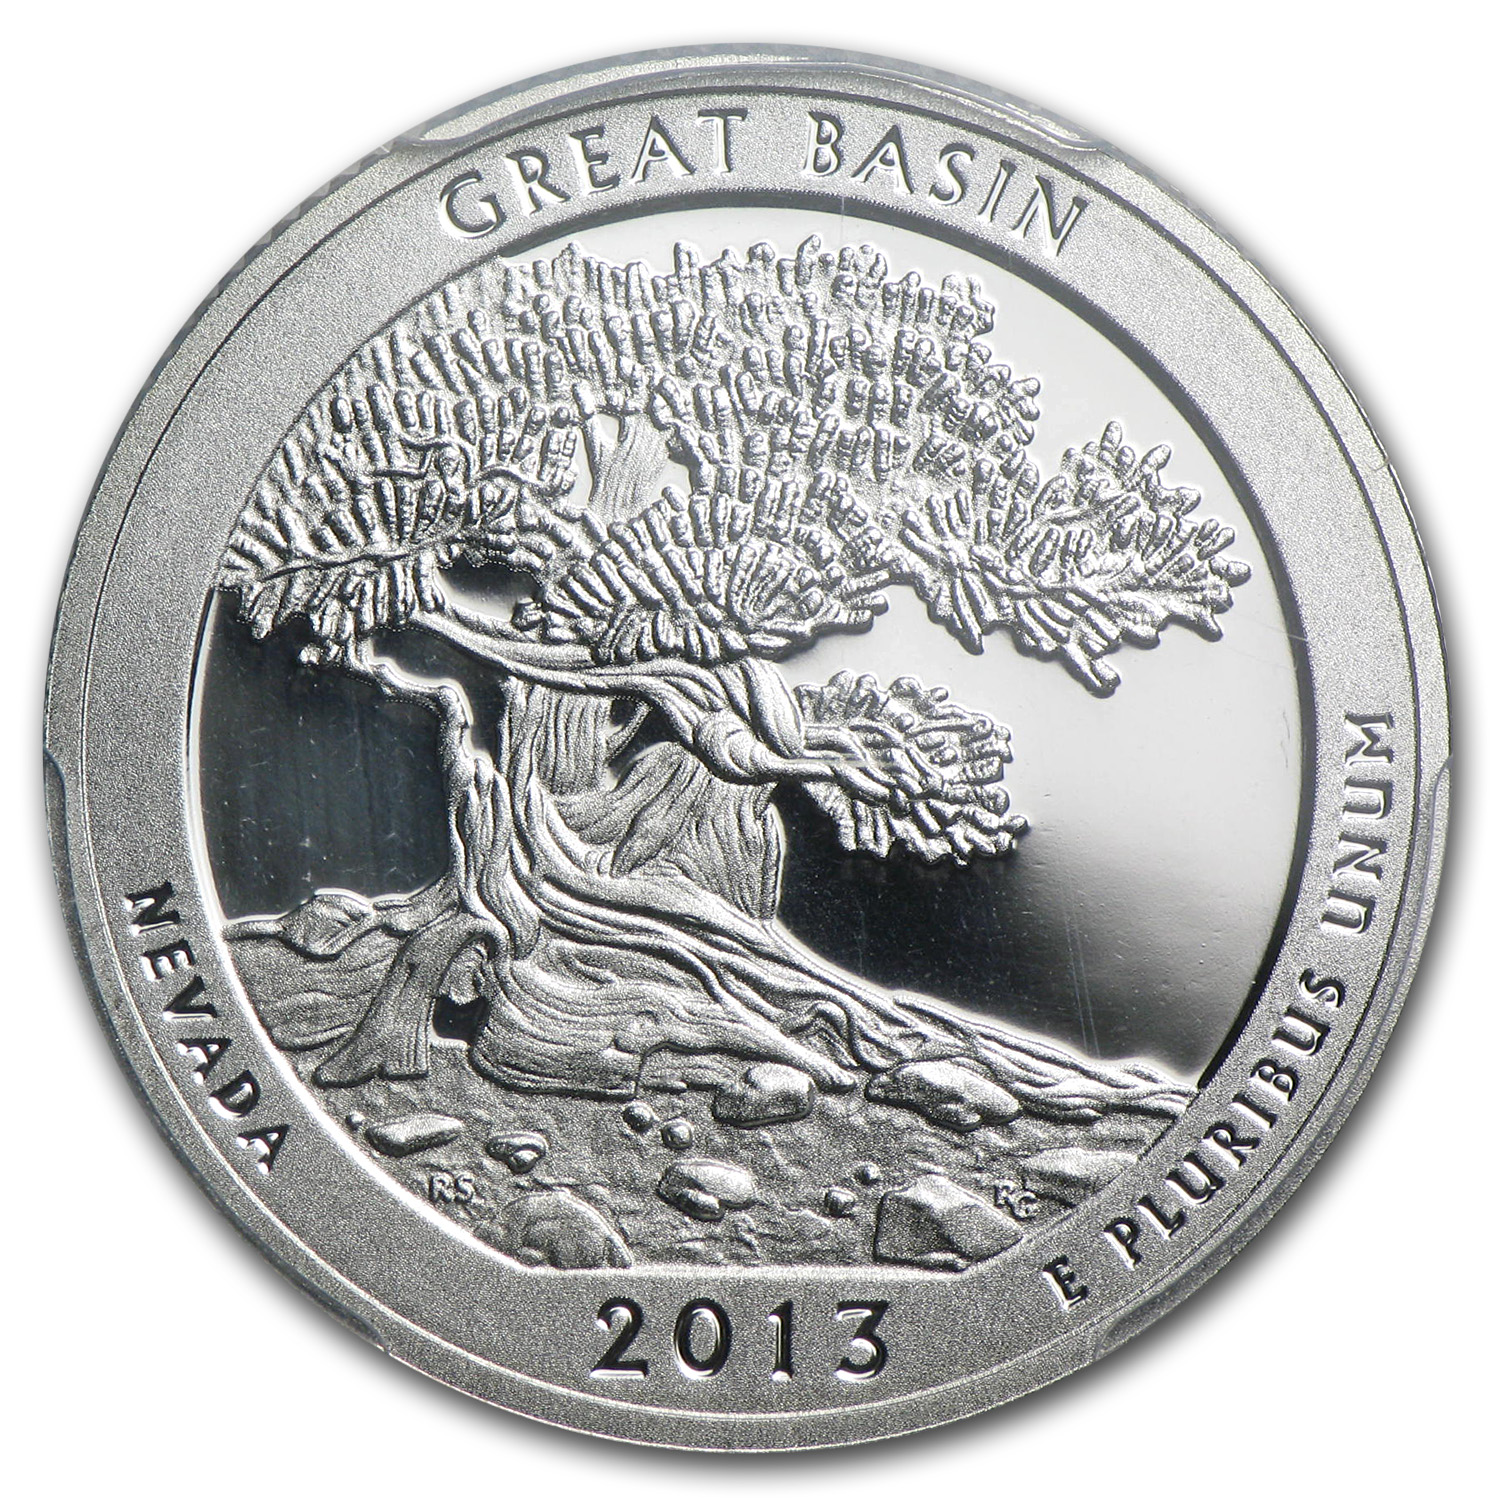 2013 Limited Edition Proof Silver Great Basin Quarter PR-69 FS